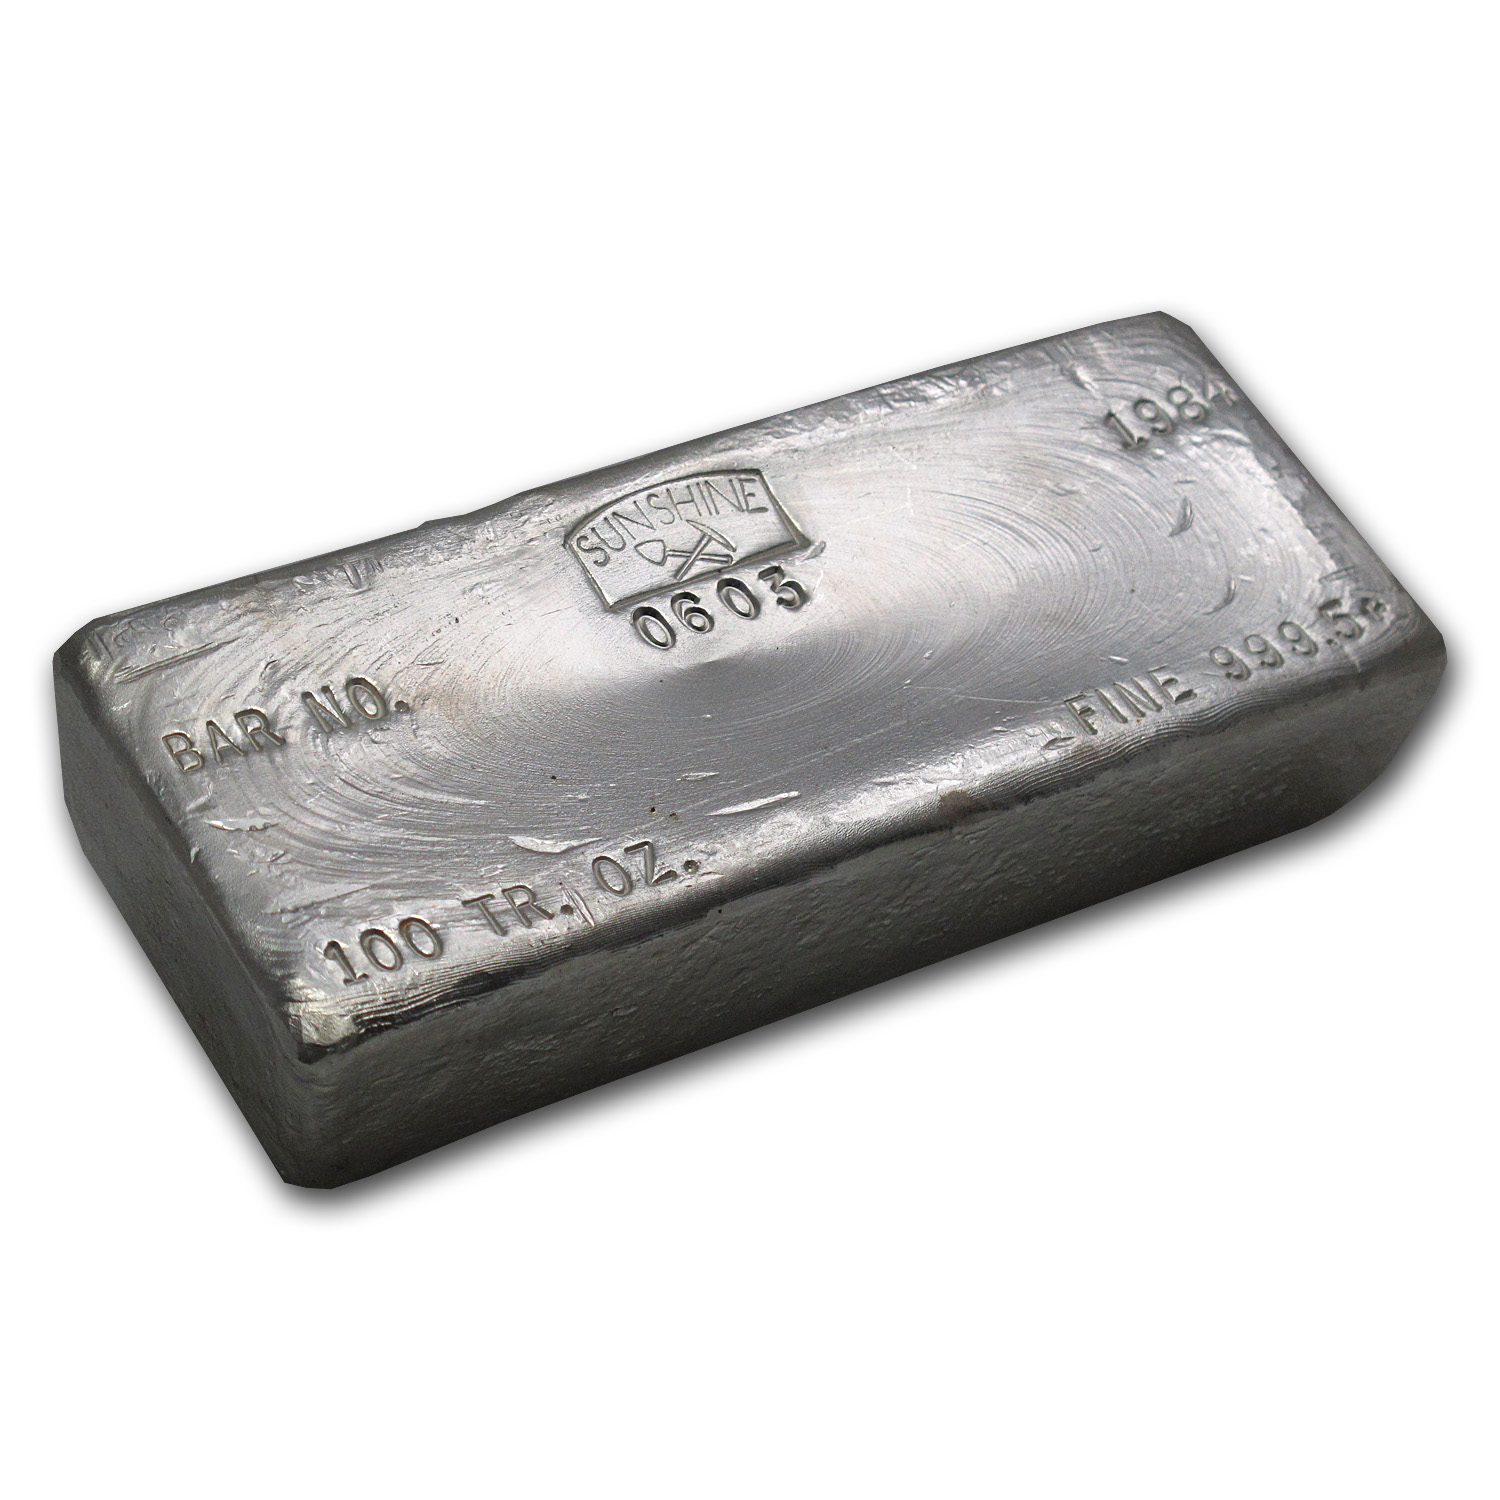 100 oz Silver Bar - Sunshine (1984/Vintage/Poured)